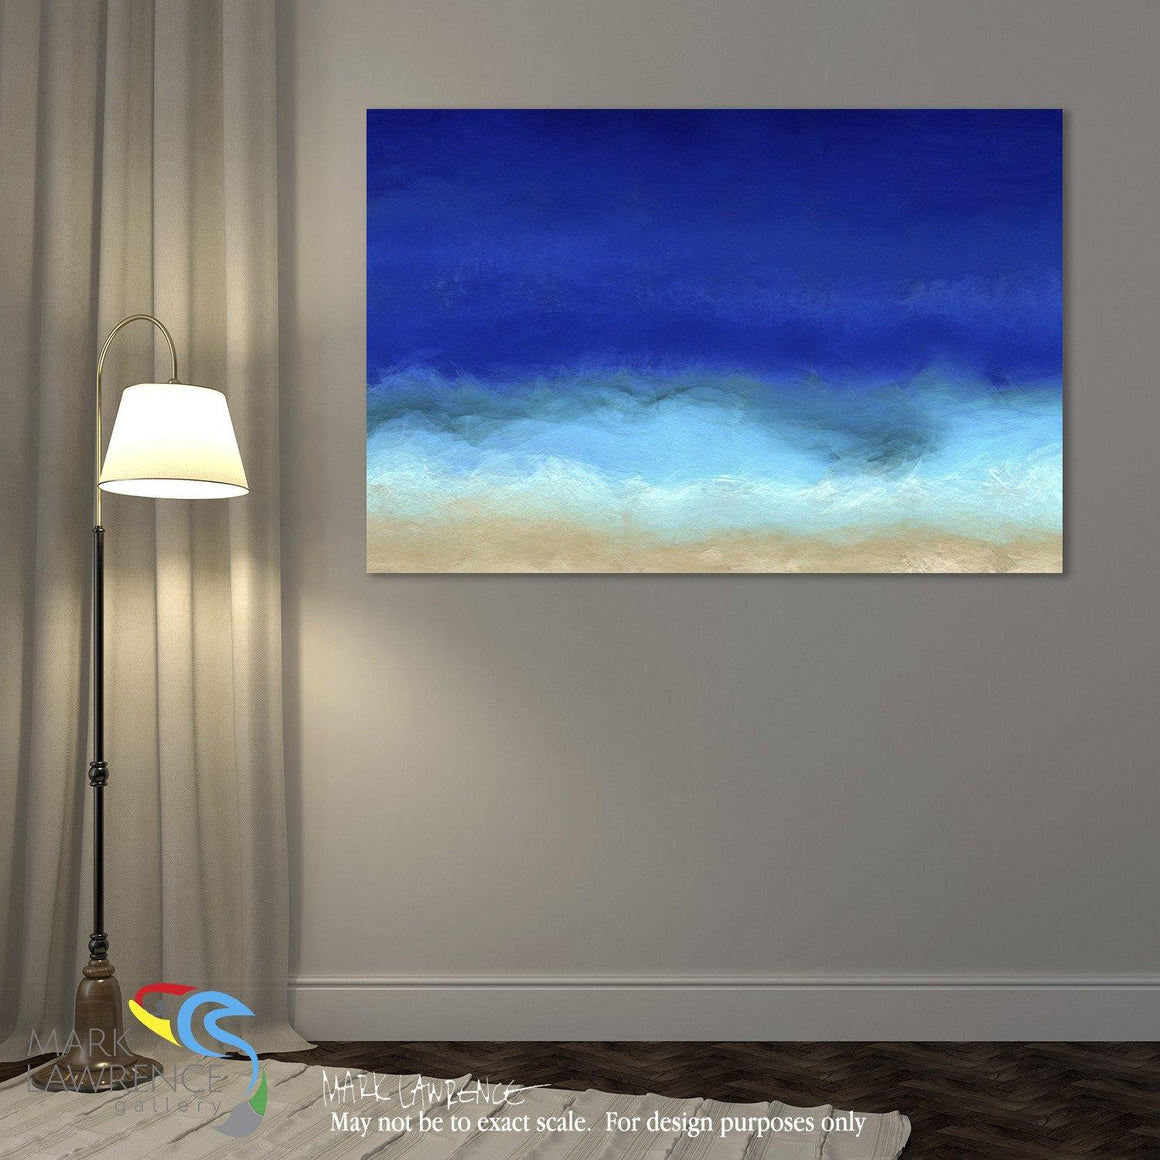 Interior Design Focal Art Inspiration-Large Painting Detail-Beach Scene 8. Aqua Beach Blues. Original large format limited edition signed canvas & paper giclees by internationally collected artist Mark Lawrence